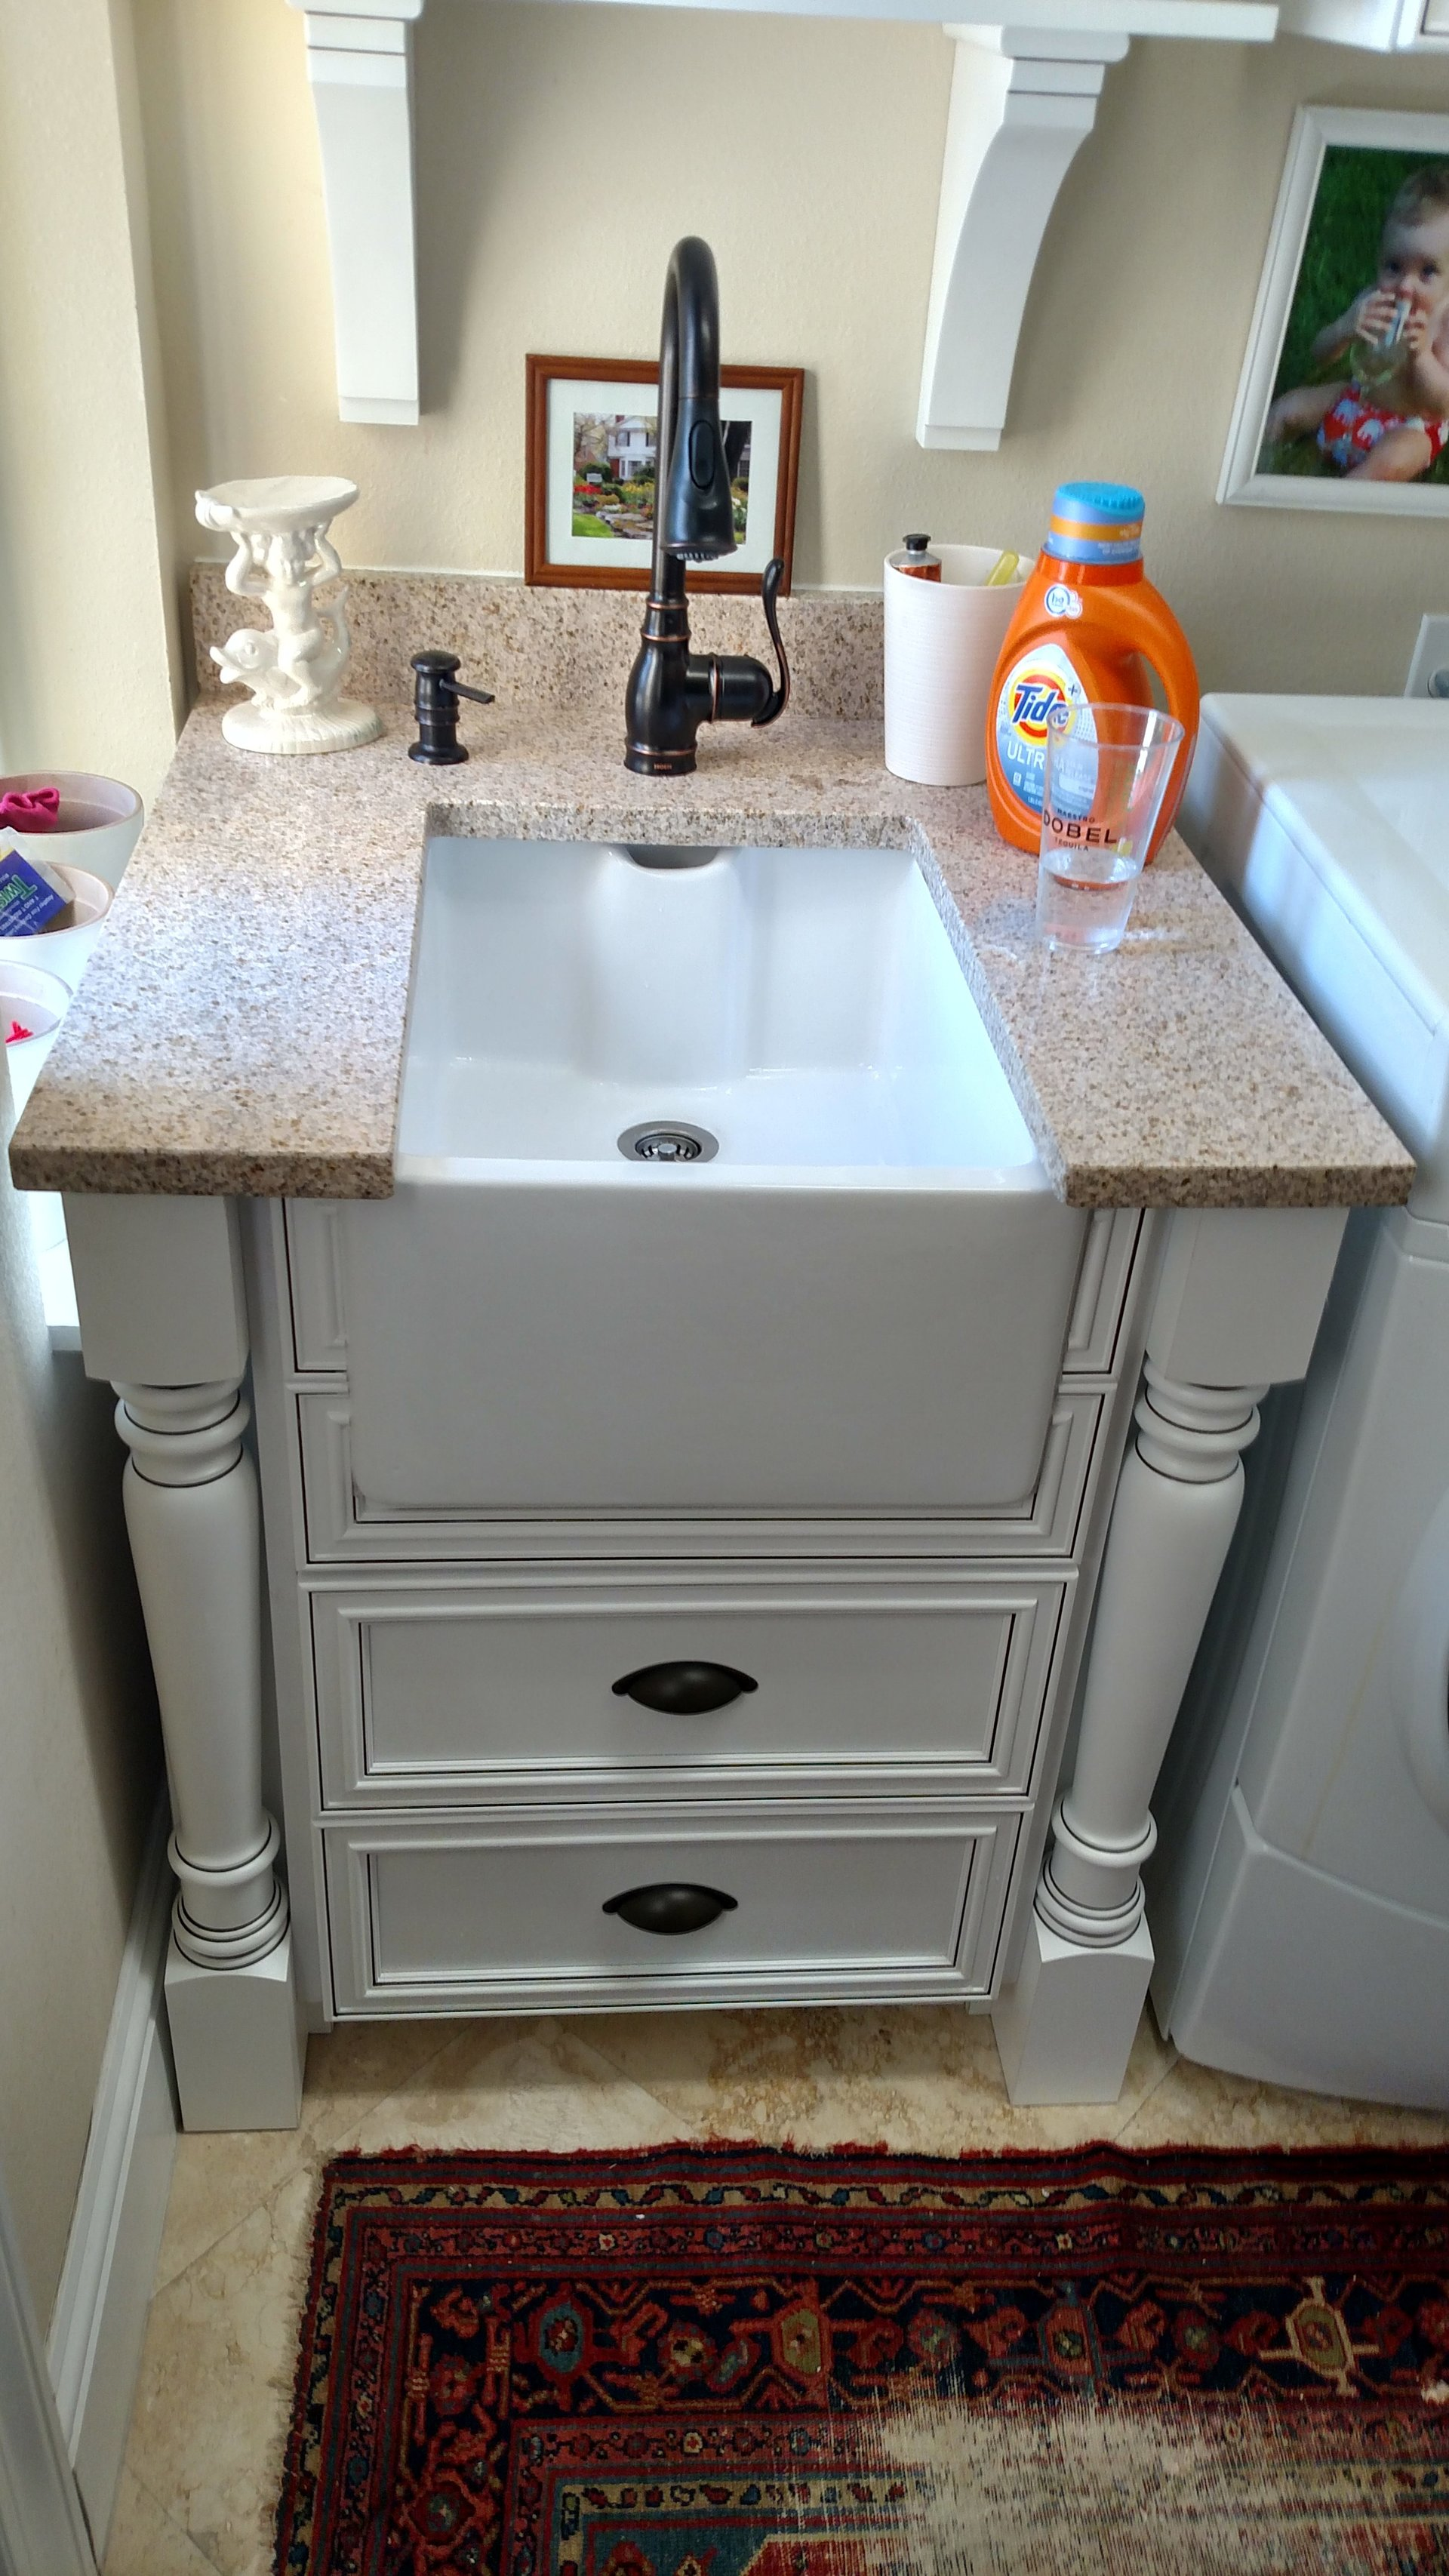 Farm sink in laundry room